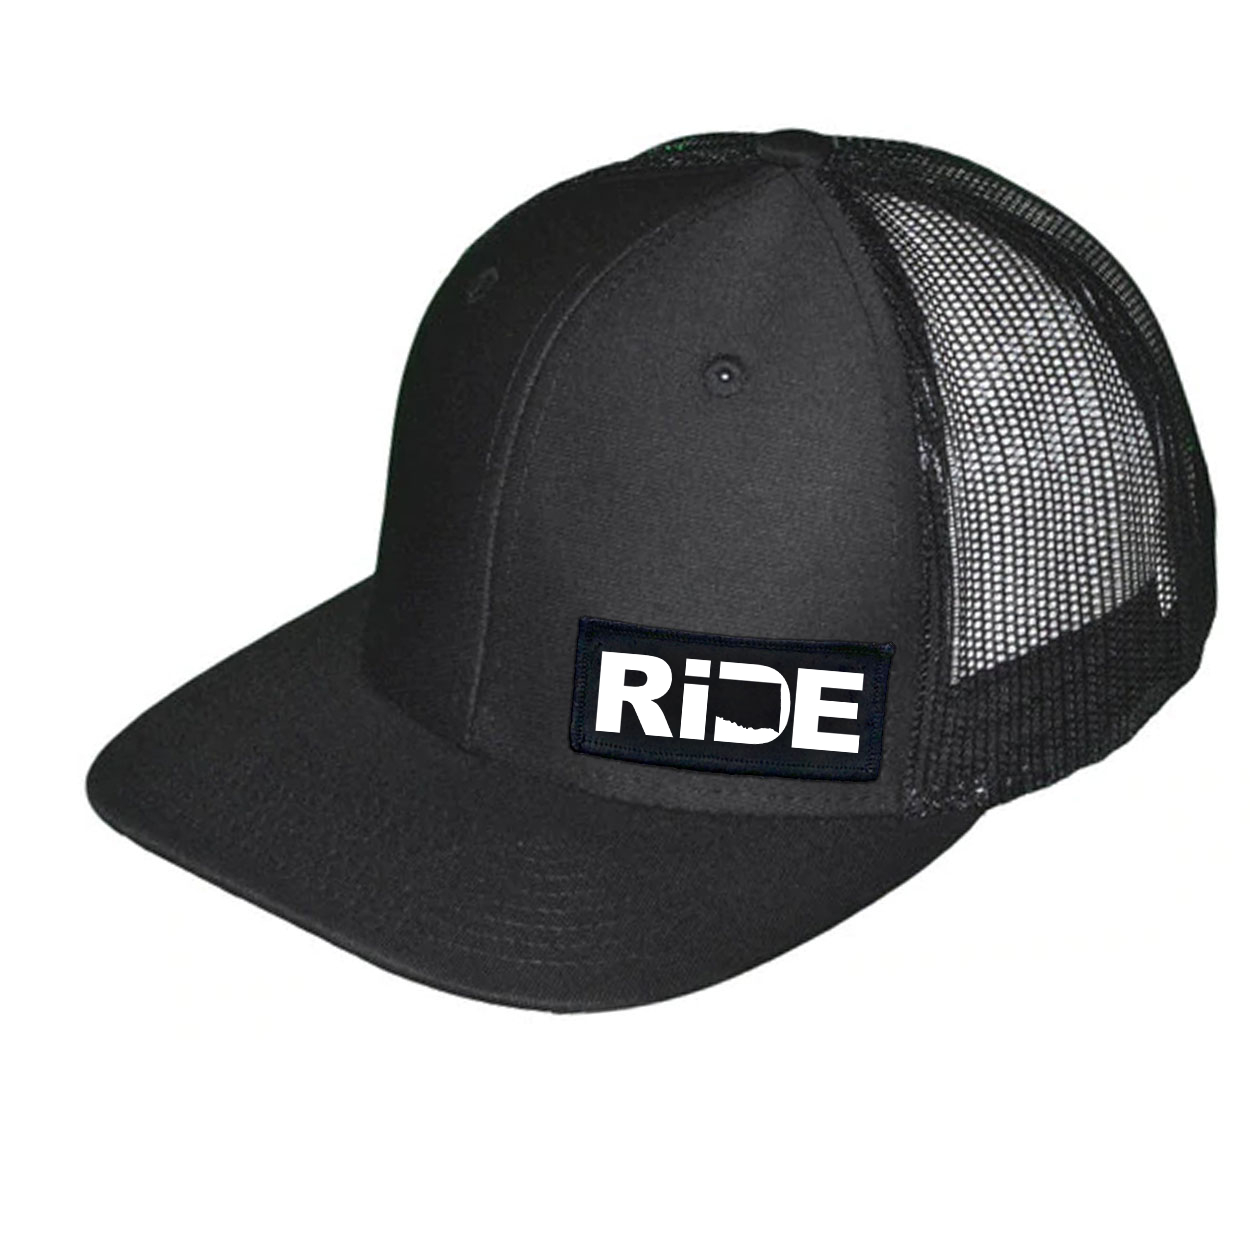 Ride Oklahoma Night Out Woven Patch Snapback Trucker Hat Black (White Logo)